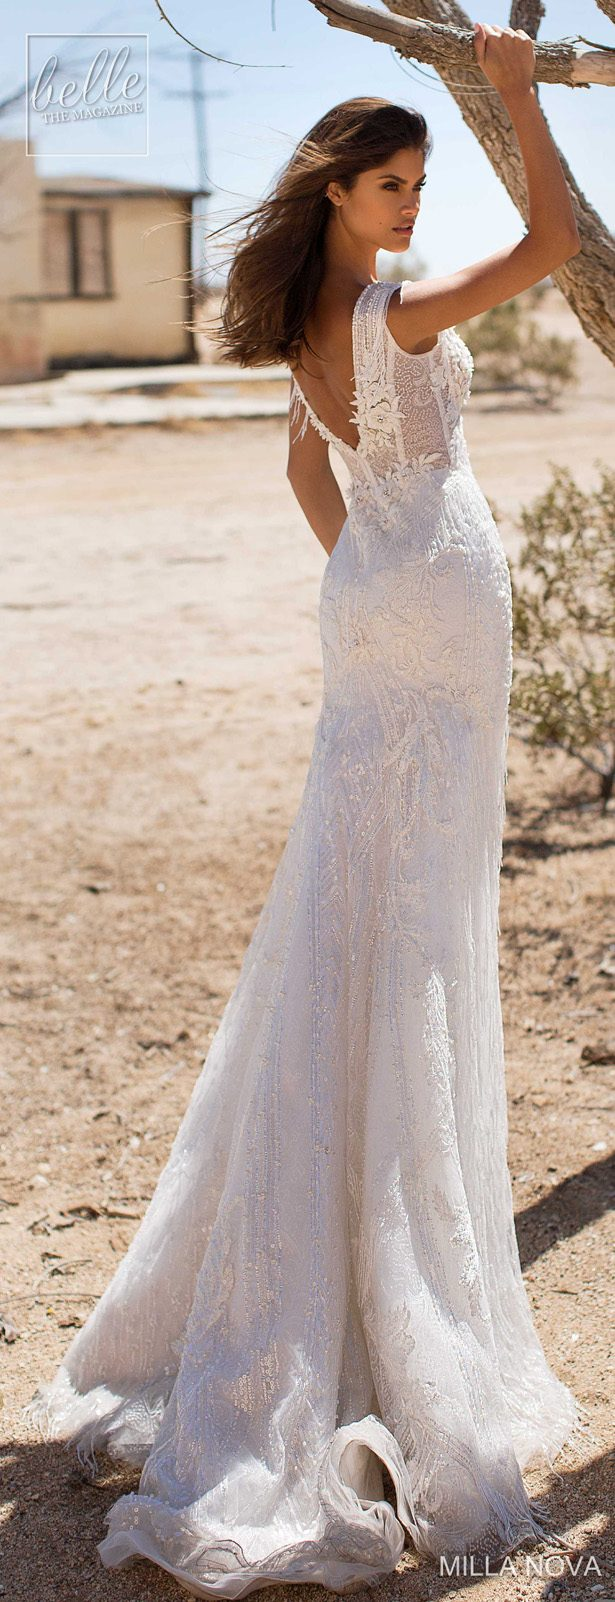 Milla Nova Wedding Dresses 2019 - California Dream Collection - Rihanna 179